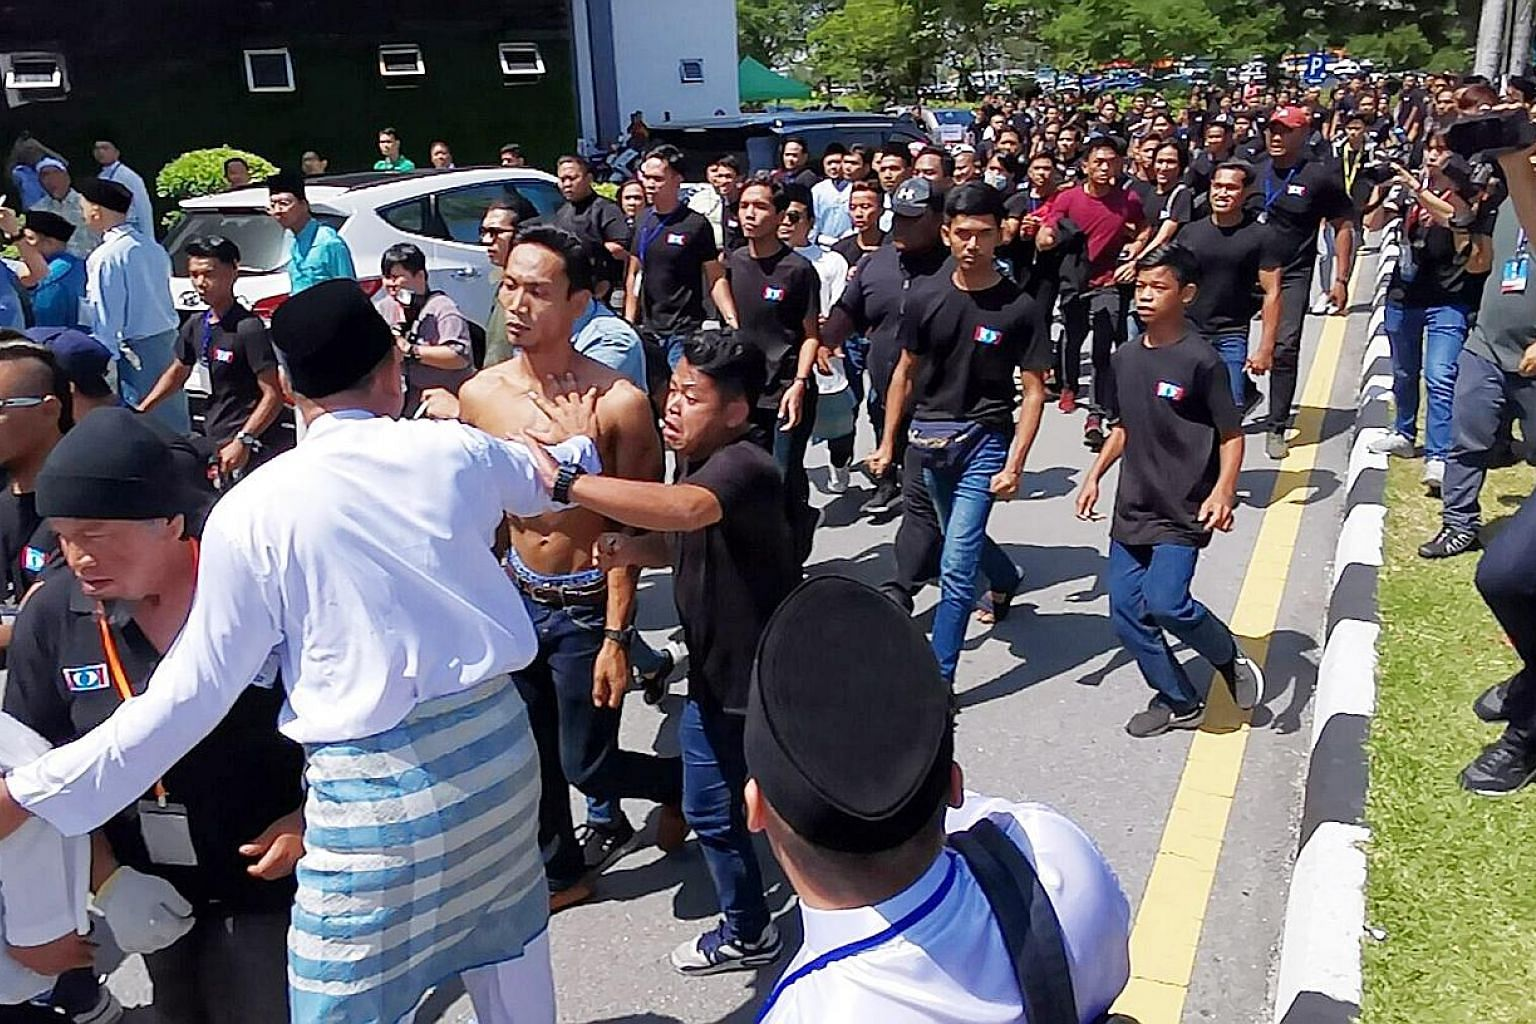 Scuffles broke out outside (above) and inside (below) the venue of the PKR's youth congress in Melaka yesterday morning, leading the pro-Azmin delegates in blue to skip the rest of the meet. A group of youths clad in black were seen at the Parti Kead